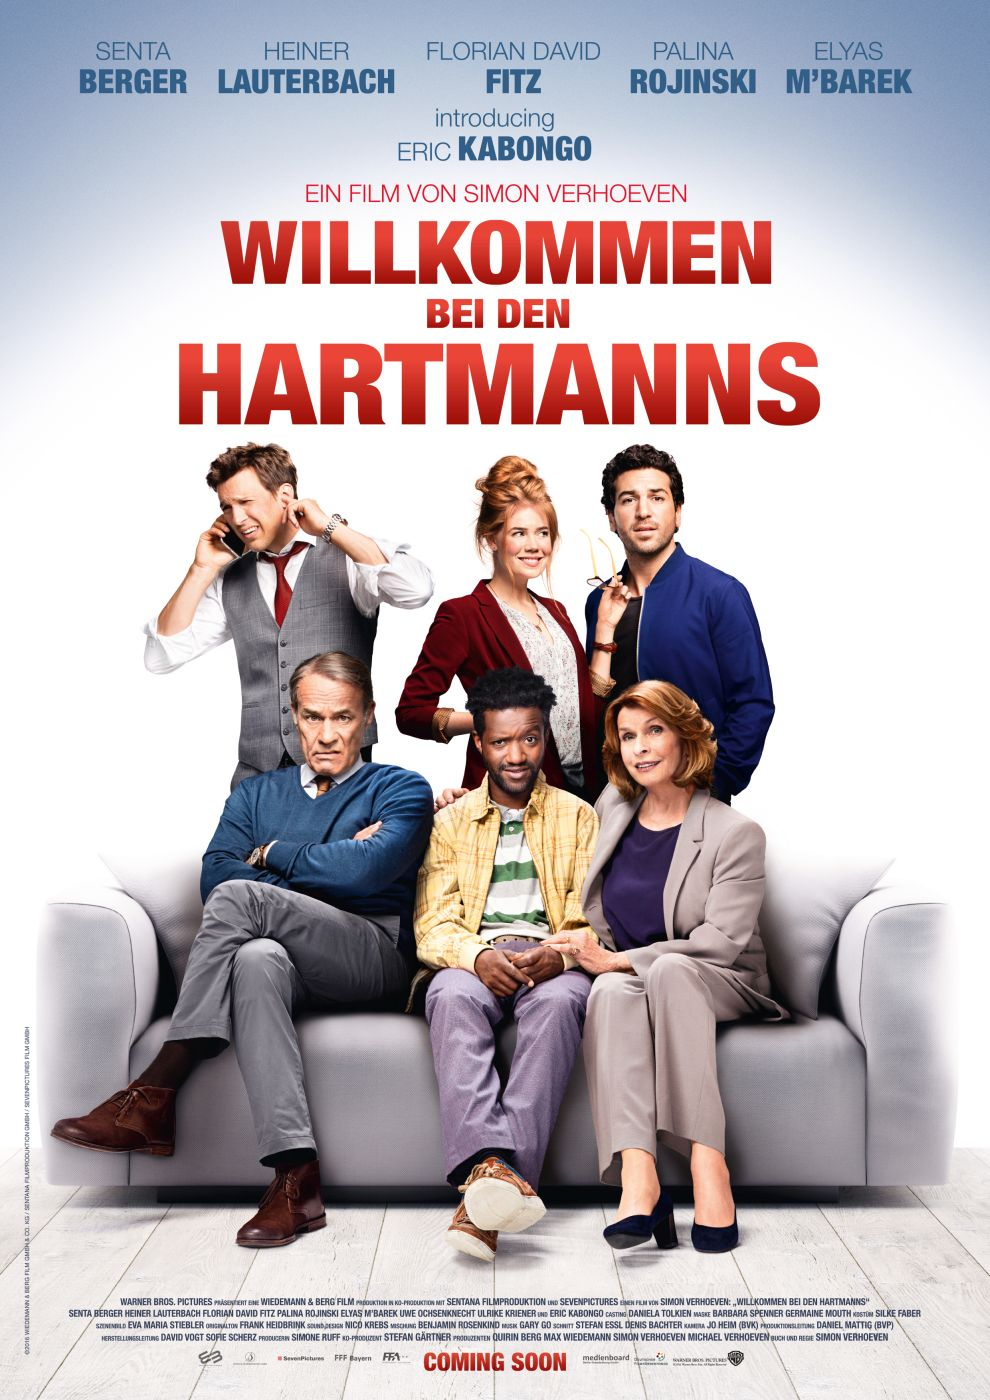 film willkommen bei den hartmanns deutsche filmbewertung und medienbewertung fbw. Black Bedroom Furniture Sets. Home Design Ideas